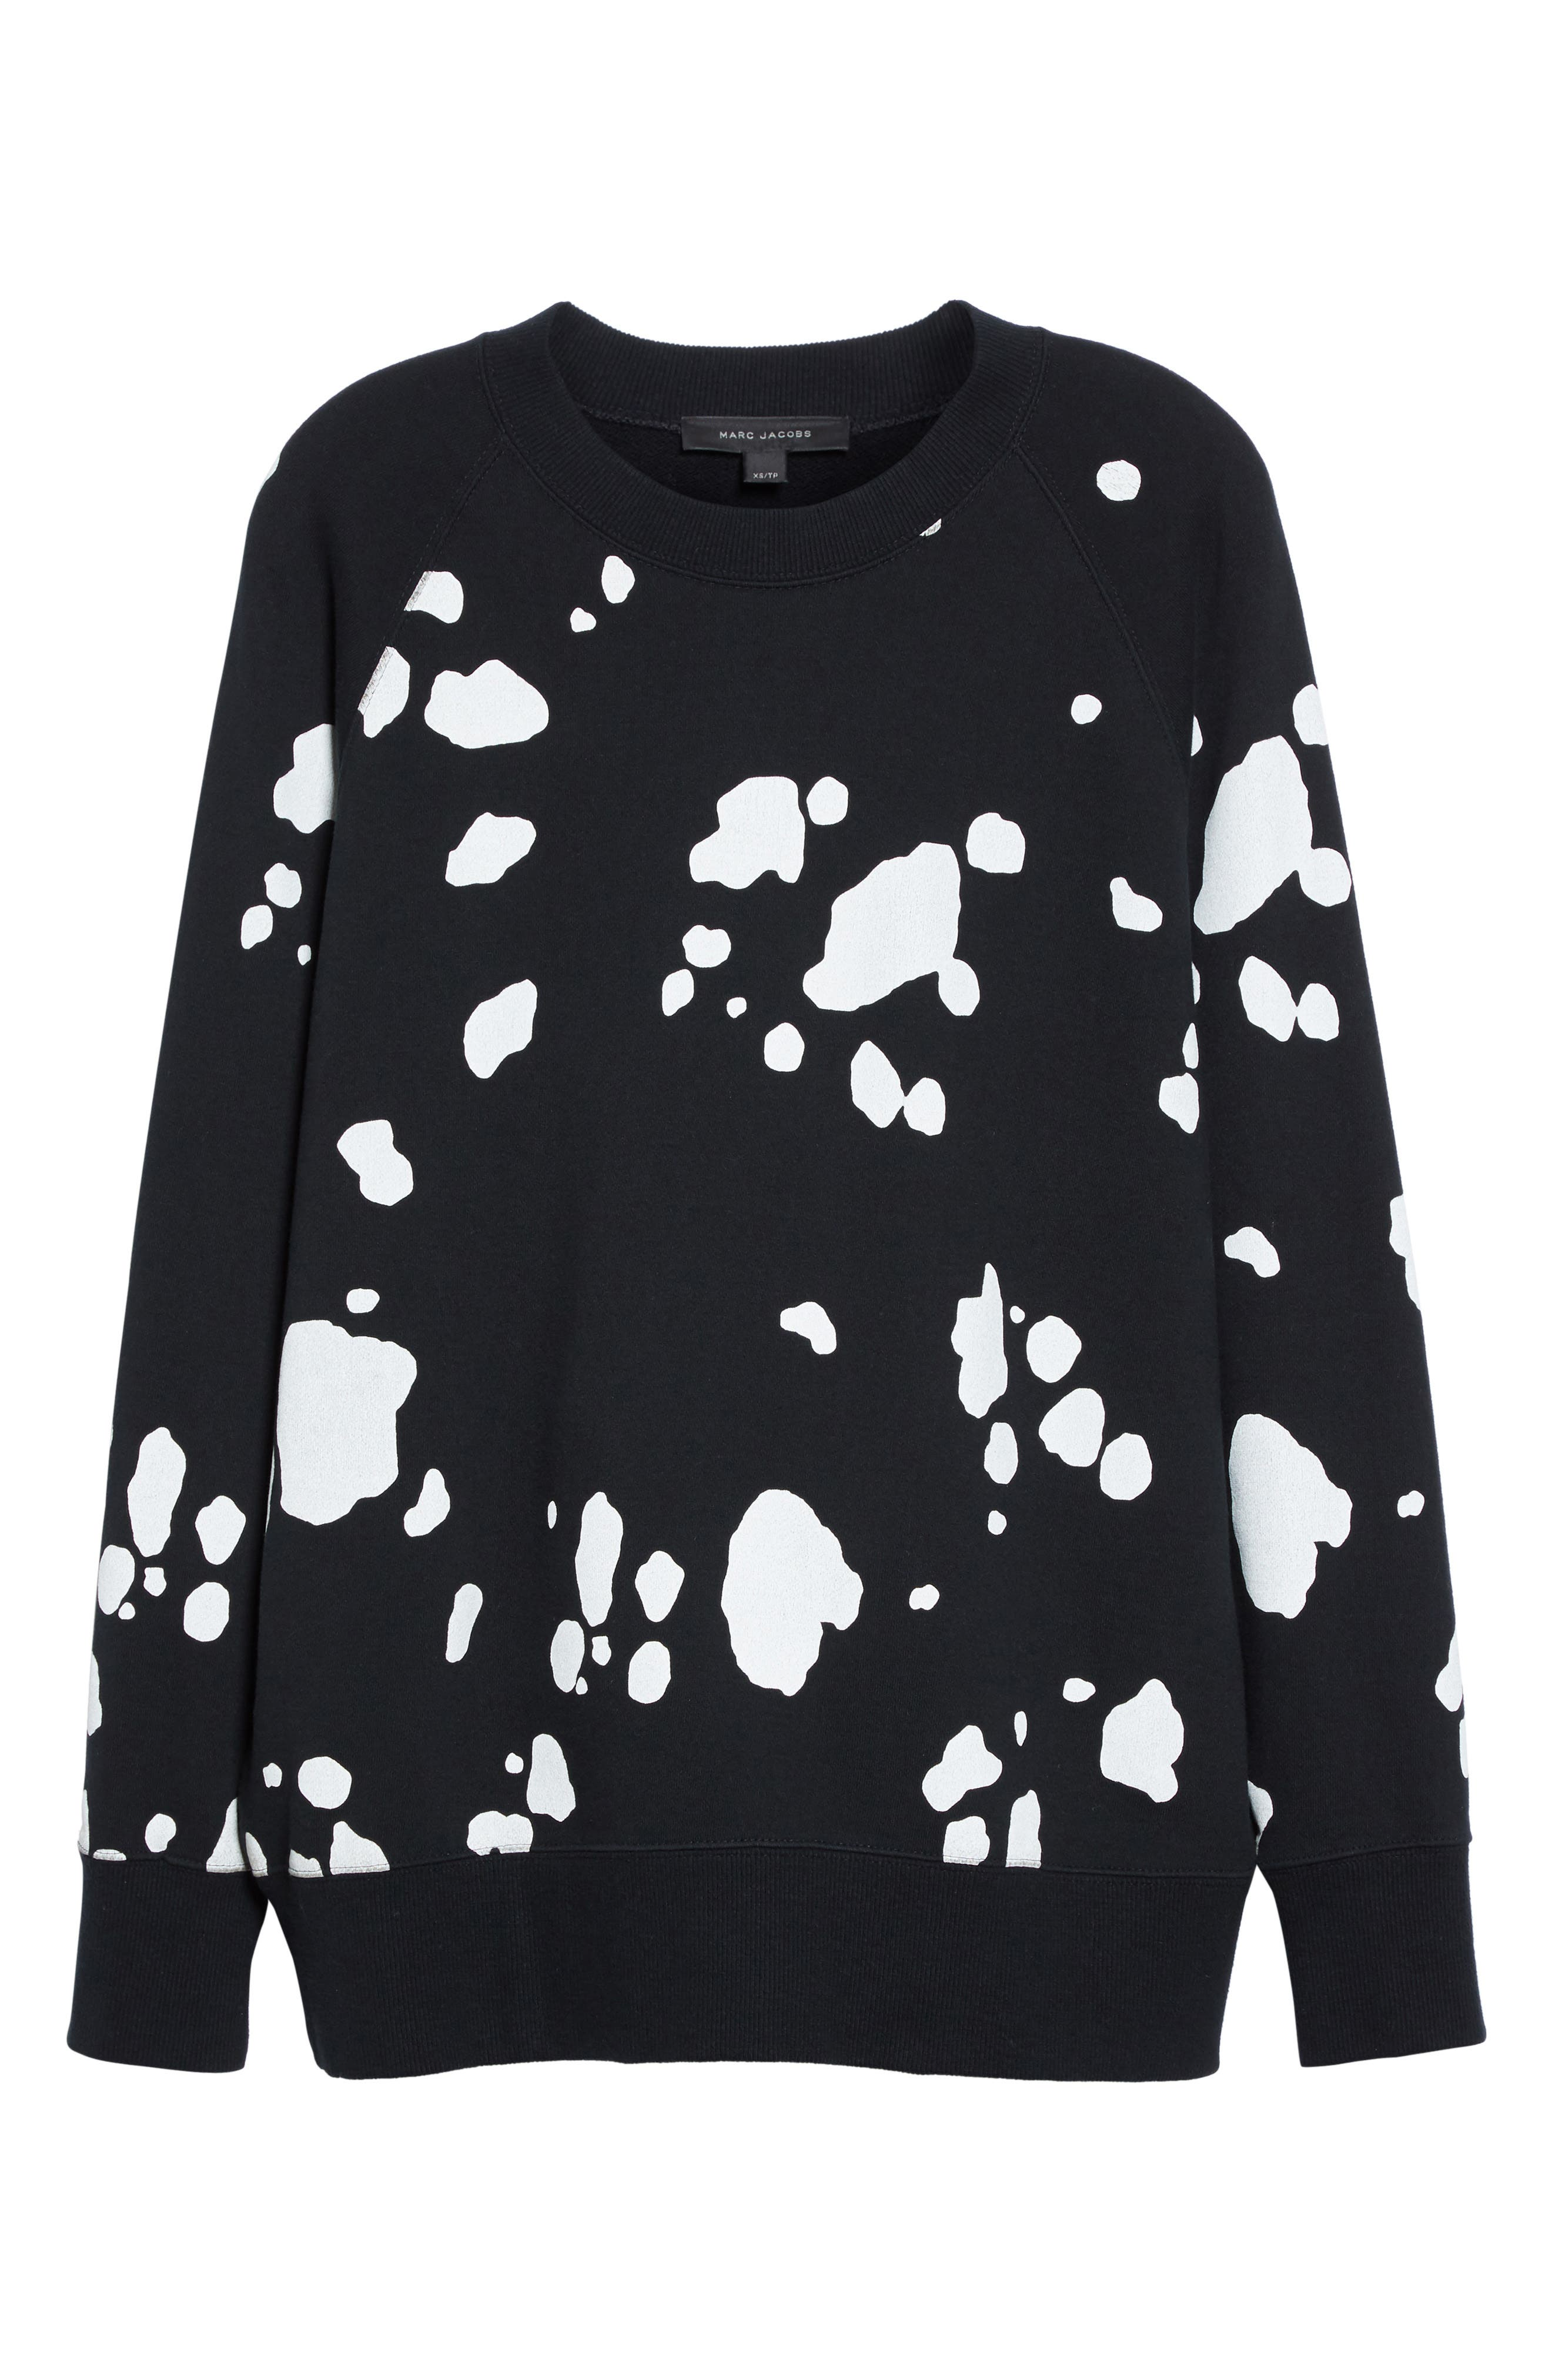 Dalmatian Print Sweatshirt,                             Alternate thumbnail 4, color,                             Black Multi